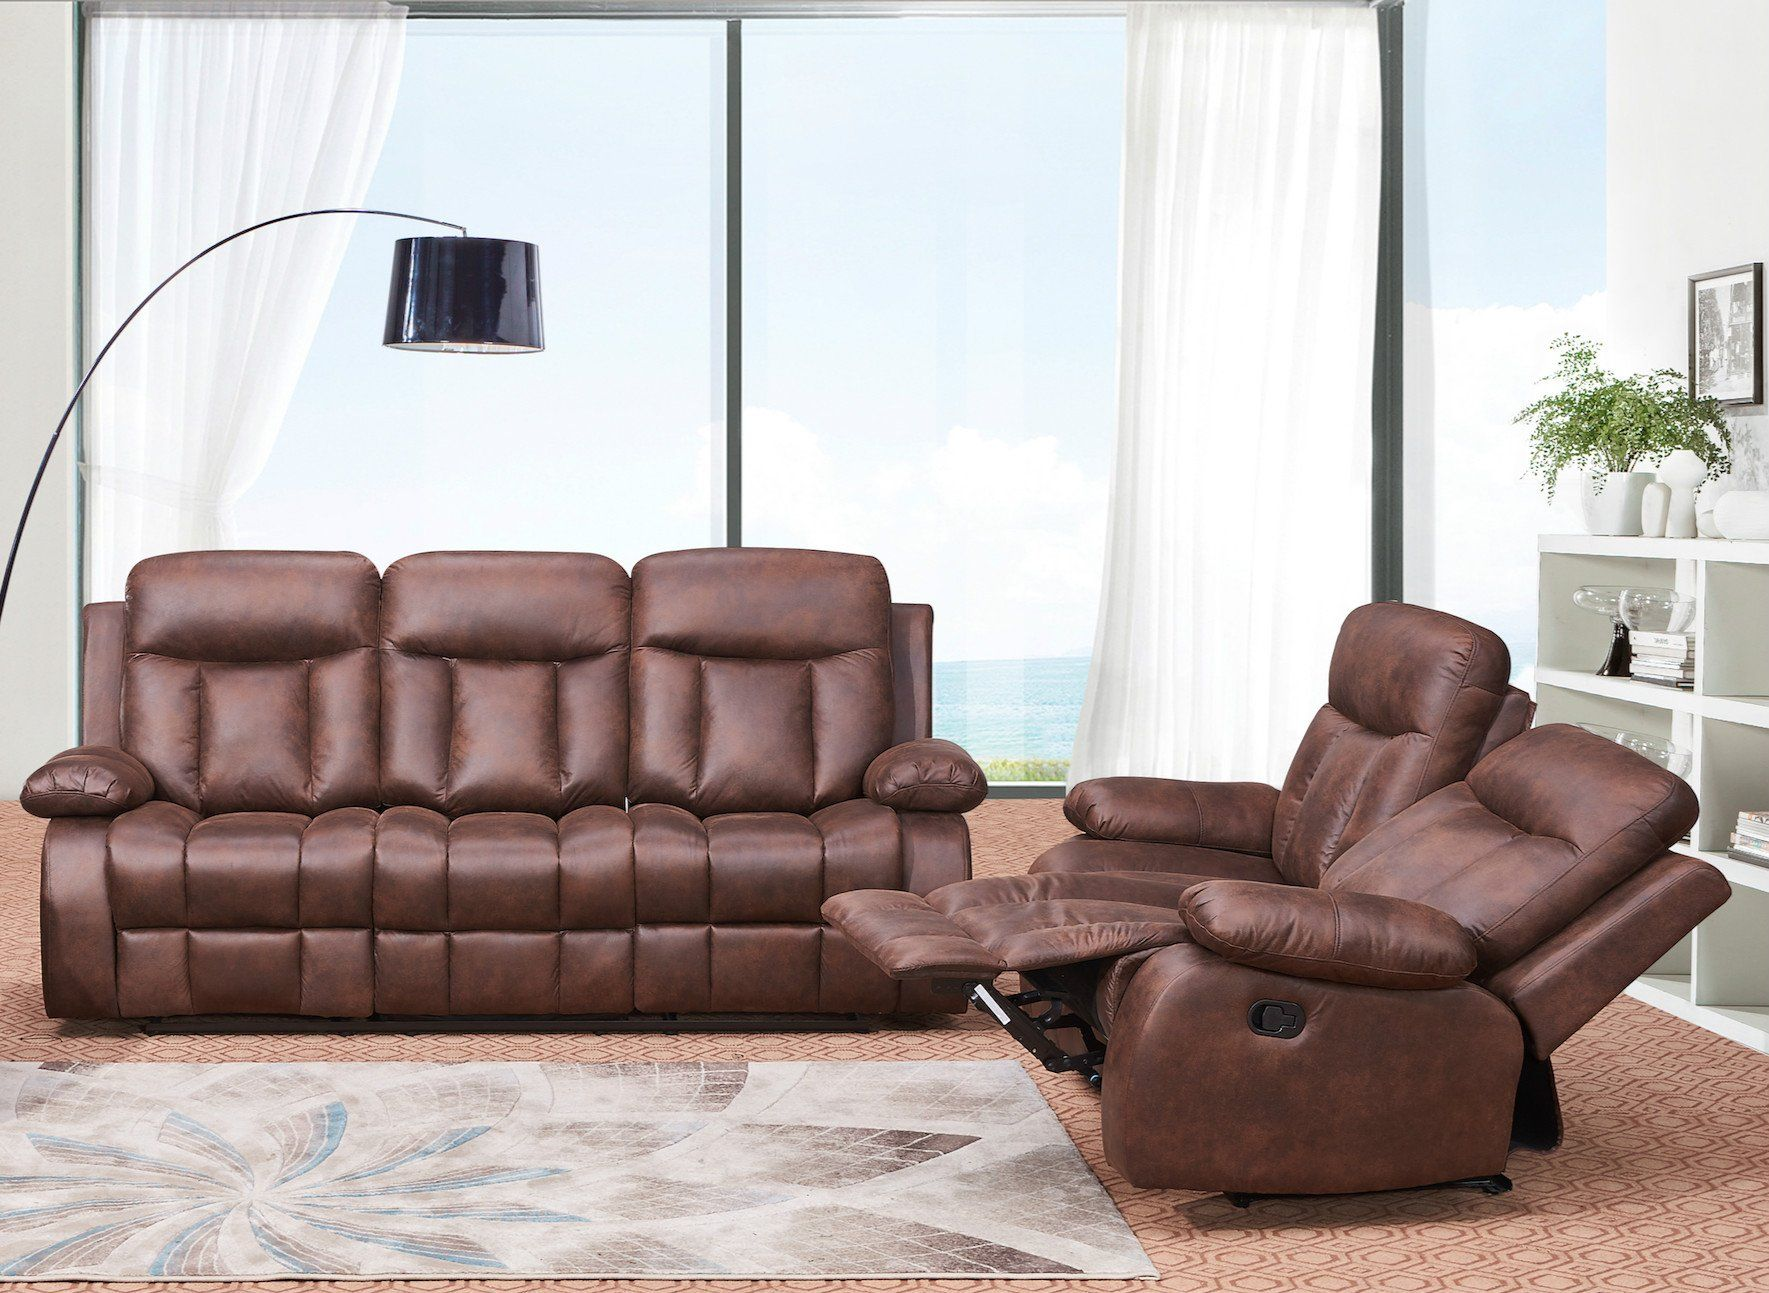 Betsy furniture 2pc microfiber fabric recliner set living room set in brown sofa loveseat chair pillow top backrest and armrests 802832 you can get